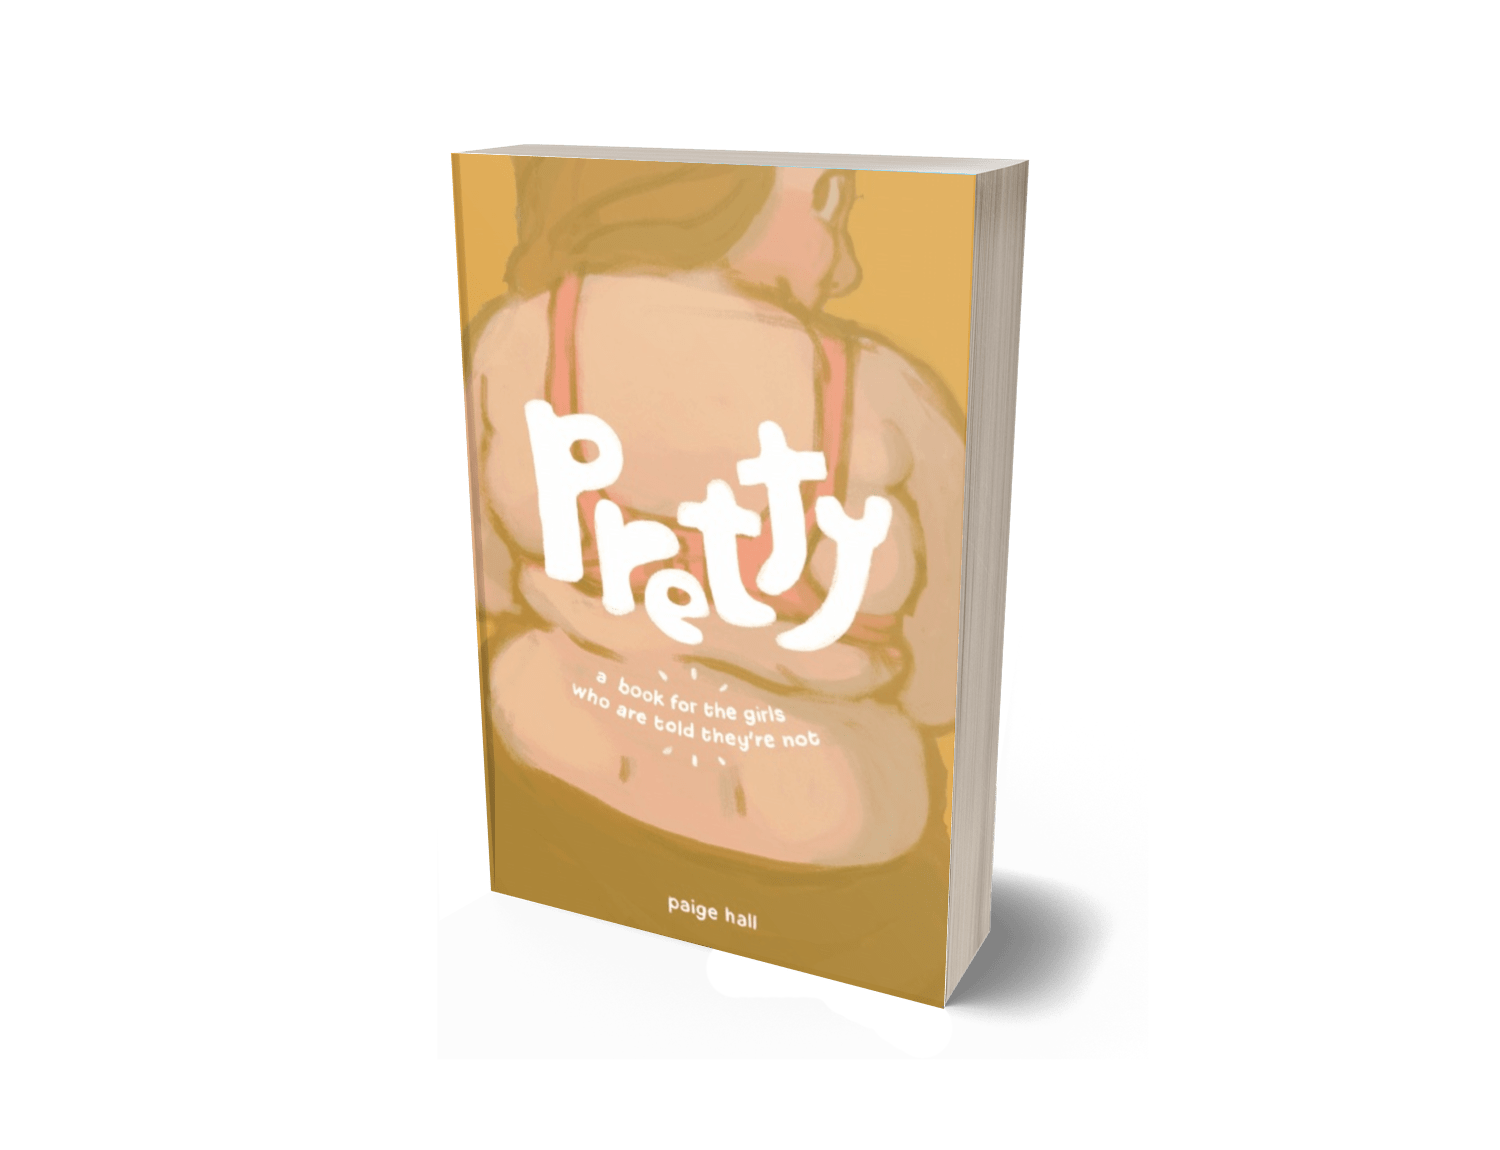 Pretty: A Book for the Girls Who Are Told They're Not